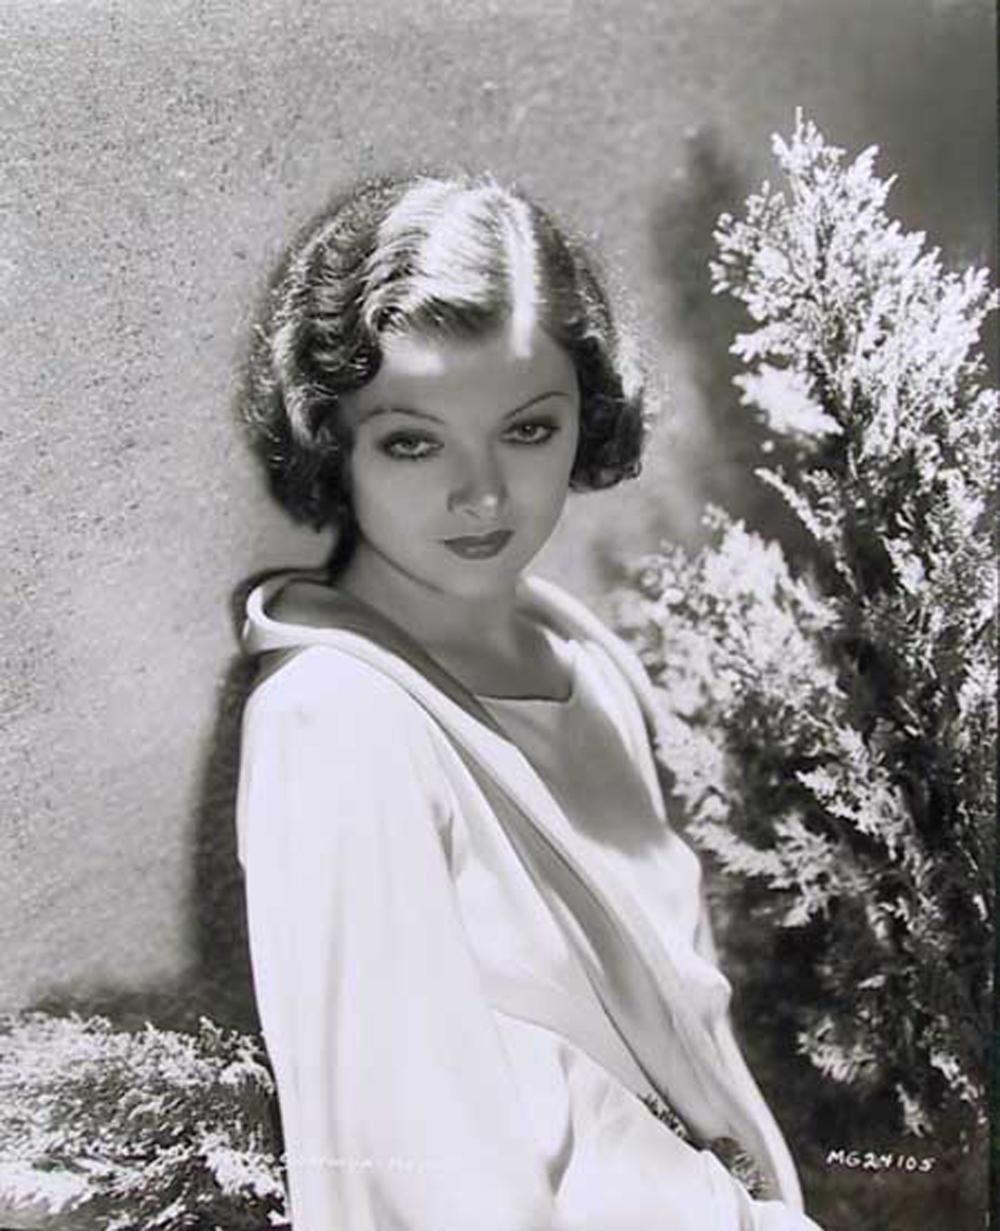 George Hurrell, Myrna Loy, Gelatin Silver Print Photograph